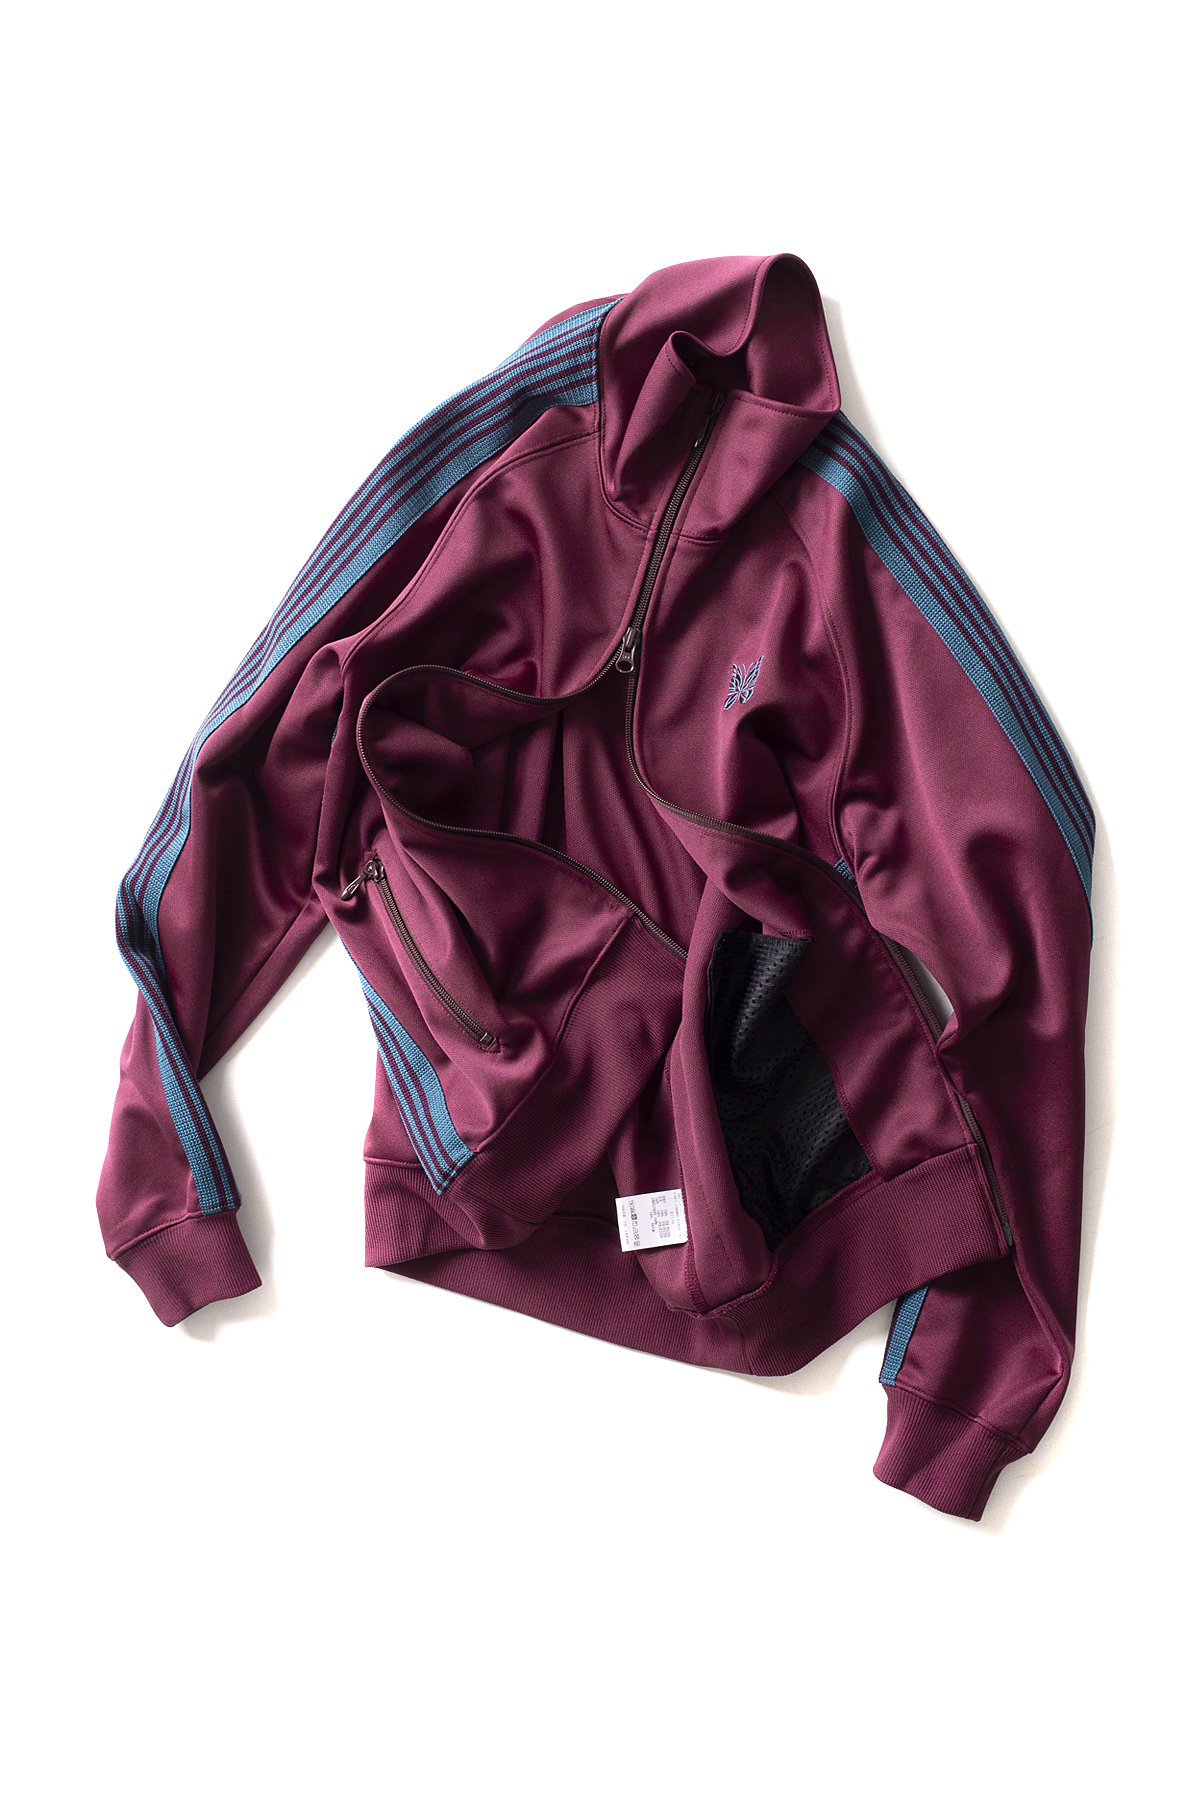 NEEDLES : Poly Smooth Narrow Track Jacket (Maroon)